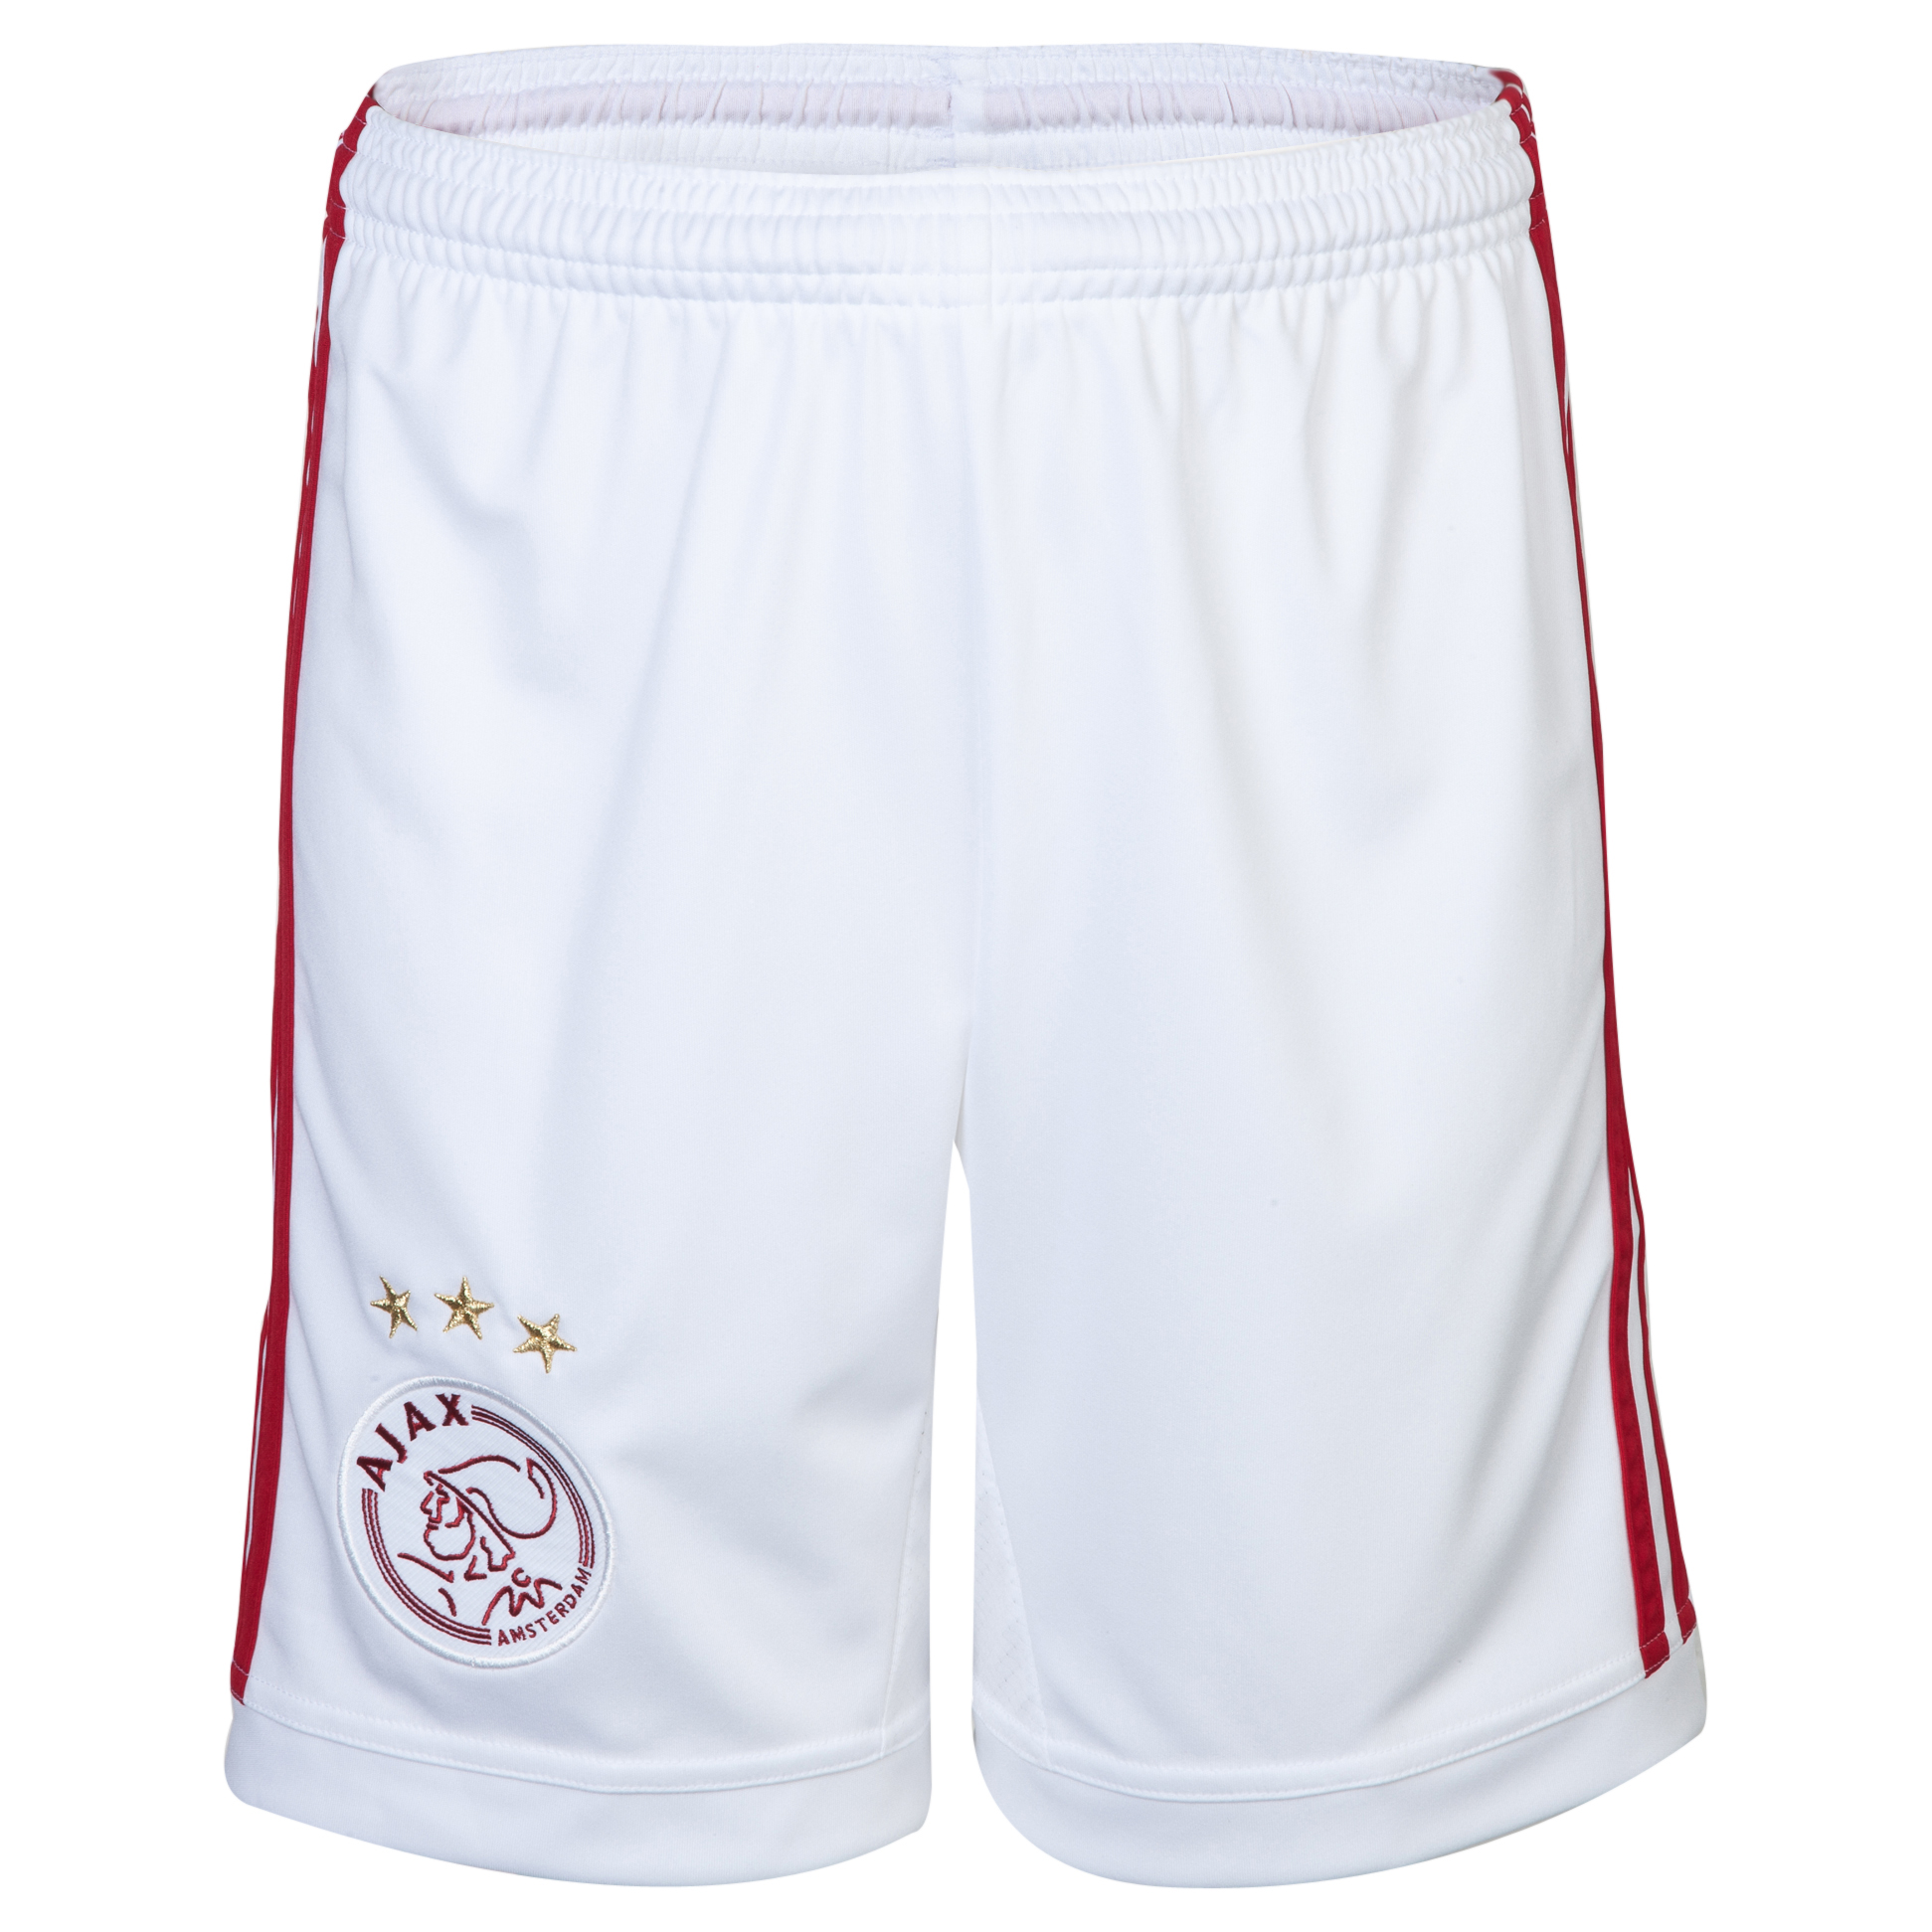 Ajax Home Shorts 2013/14 - kids